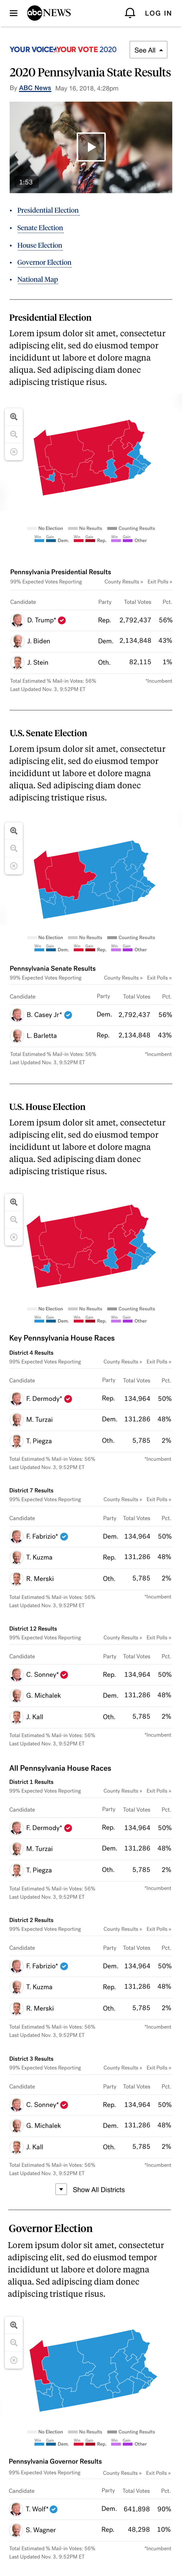 Article Page – State View – Mobile